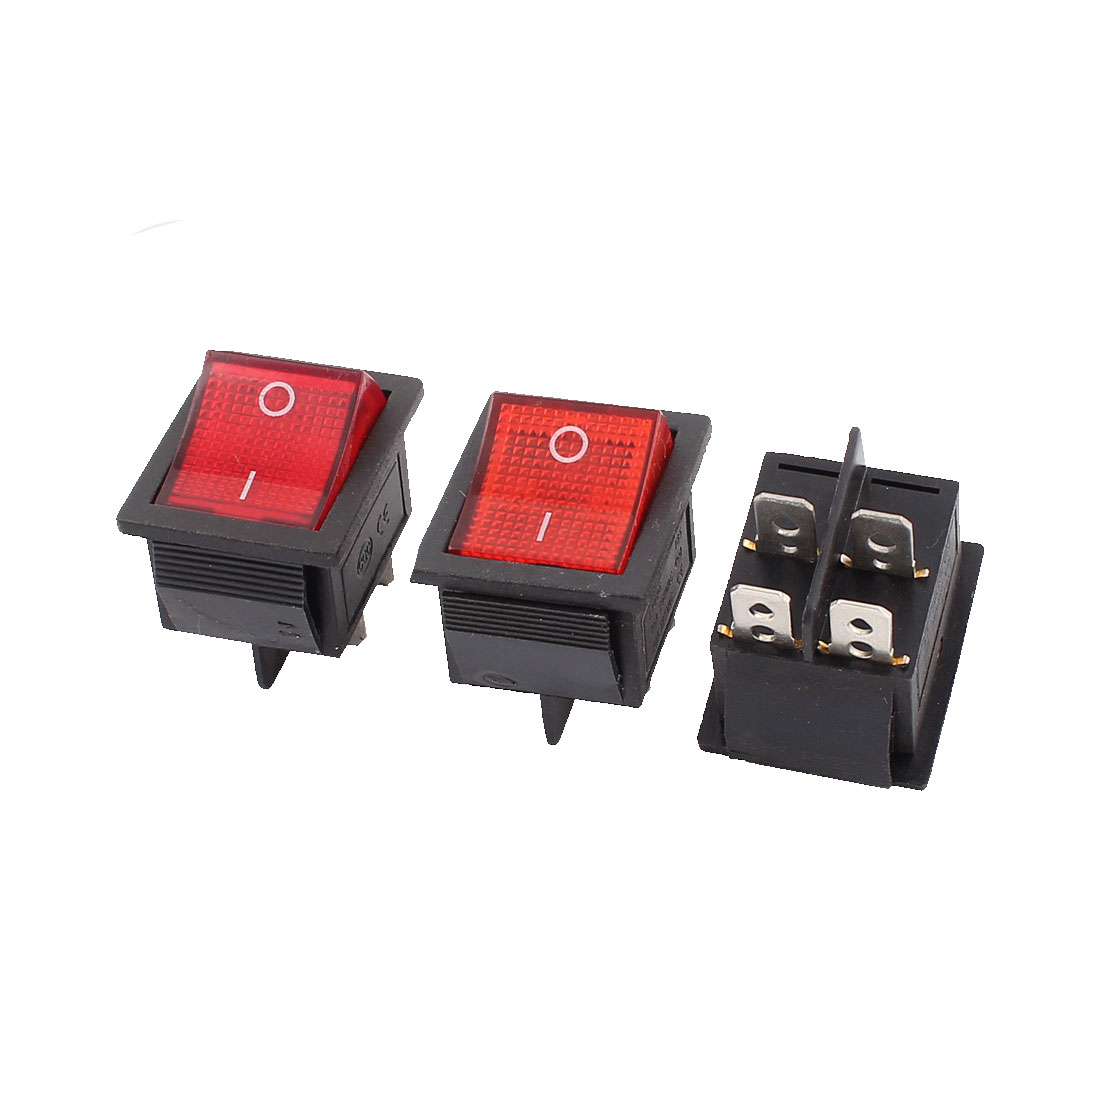 3Pcs DPST 4 Pin Soldering 2 Position Snap in Mounting Red Button Boat Rocker Switch AC 250V 16A 125V 20A